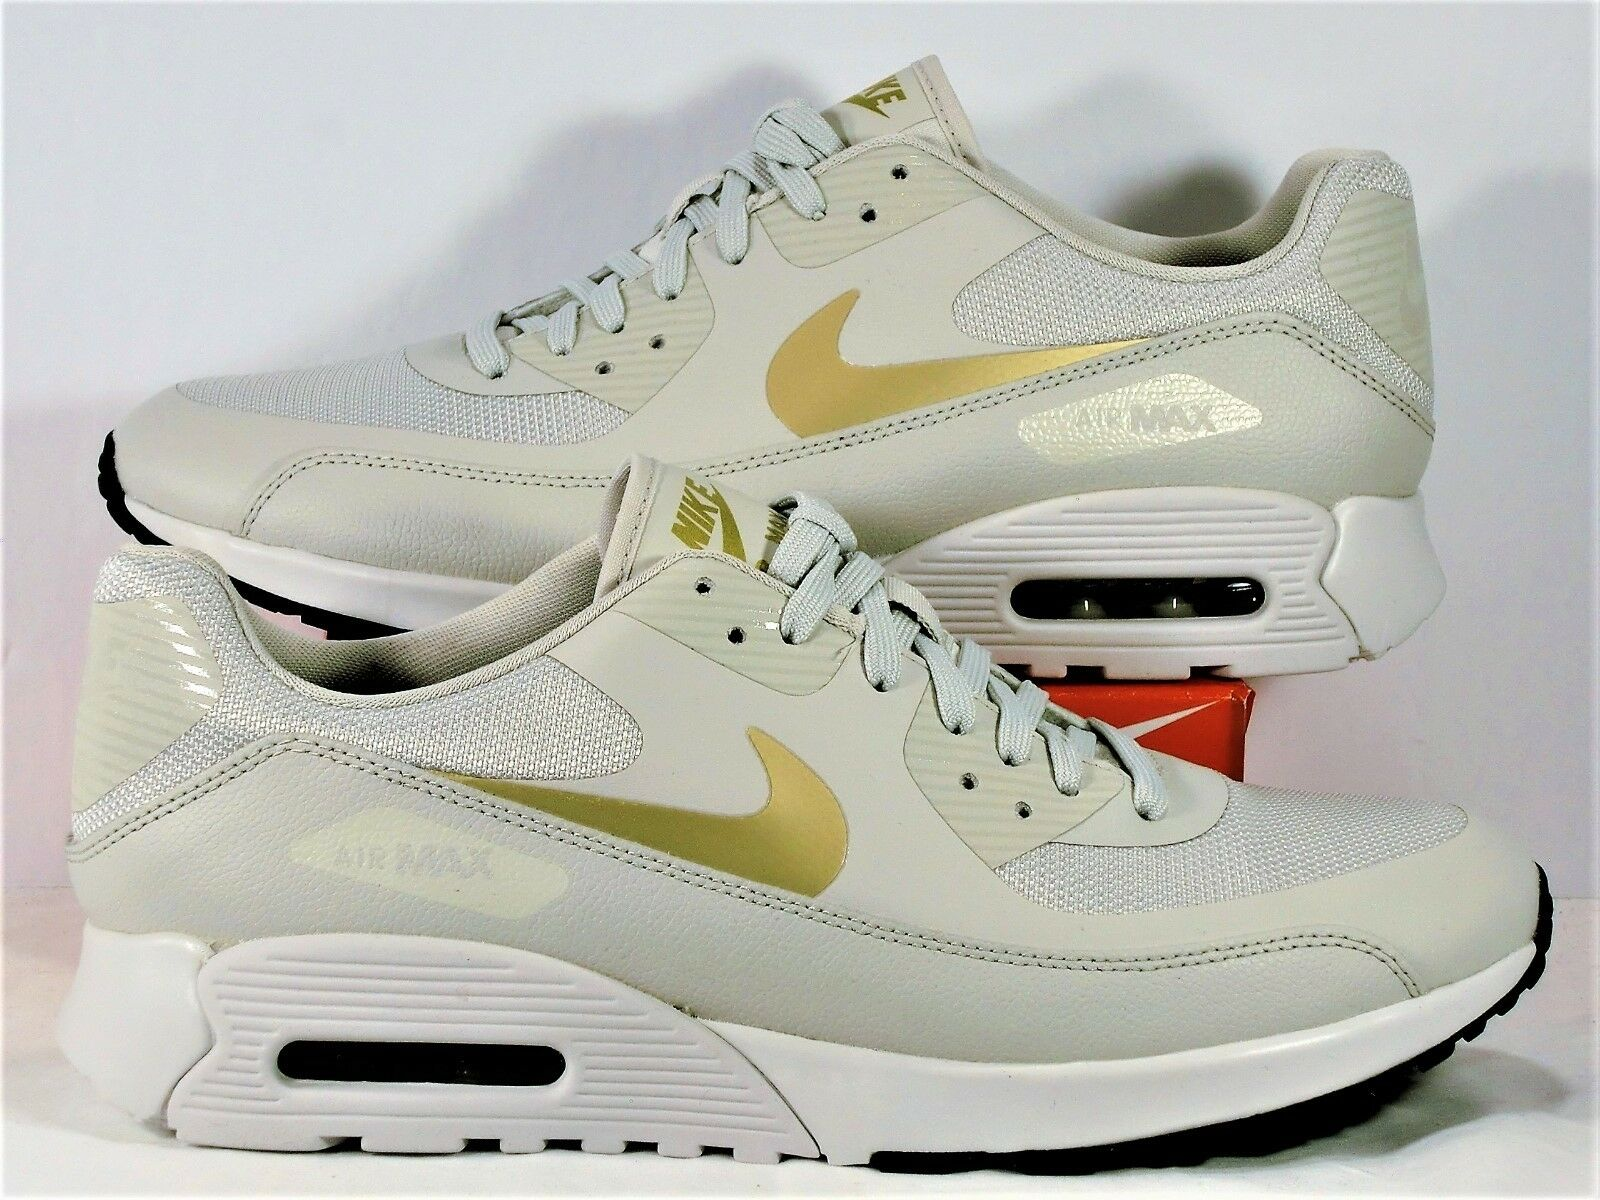 Nike Air Max 90 Ultra 2.0 Light Bone & Gold Runnng Shoes Sz 12 NEW 881106 006